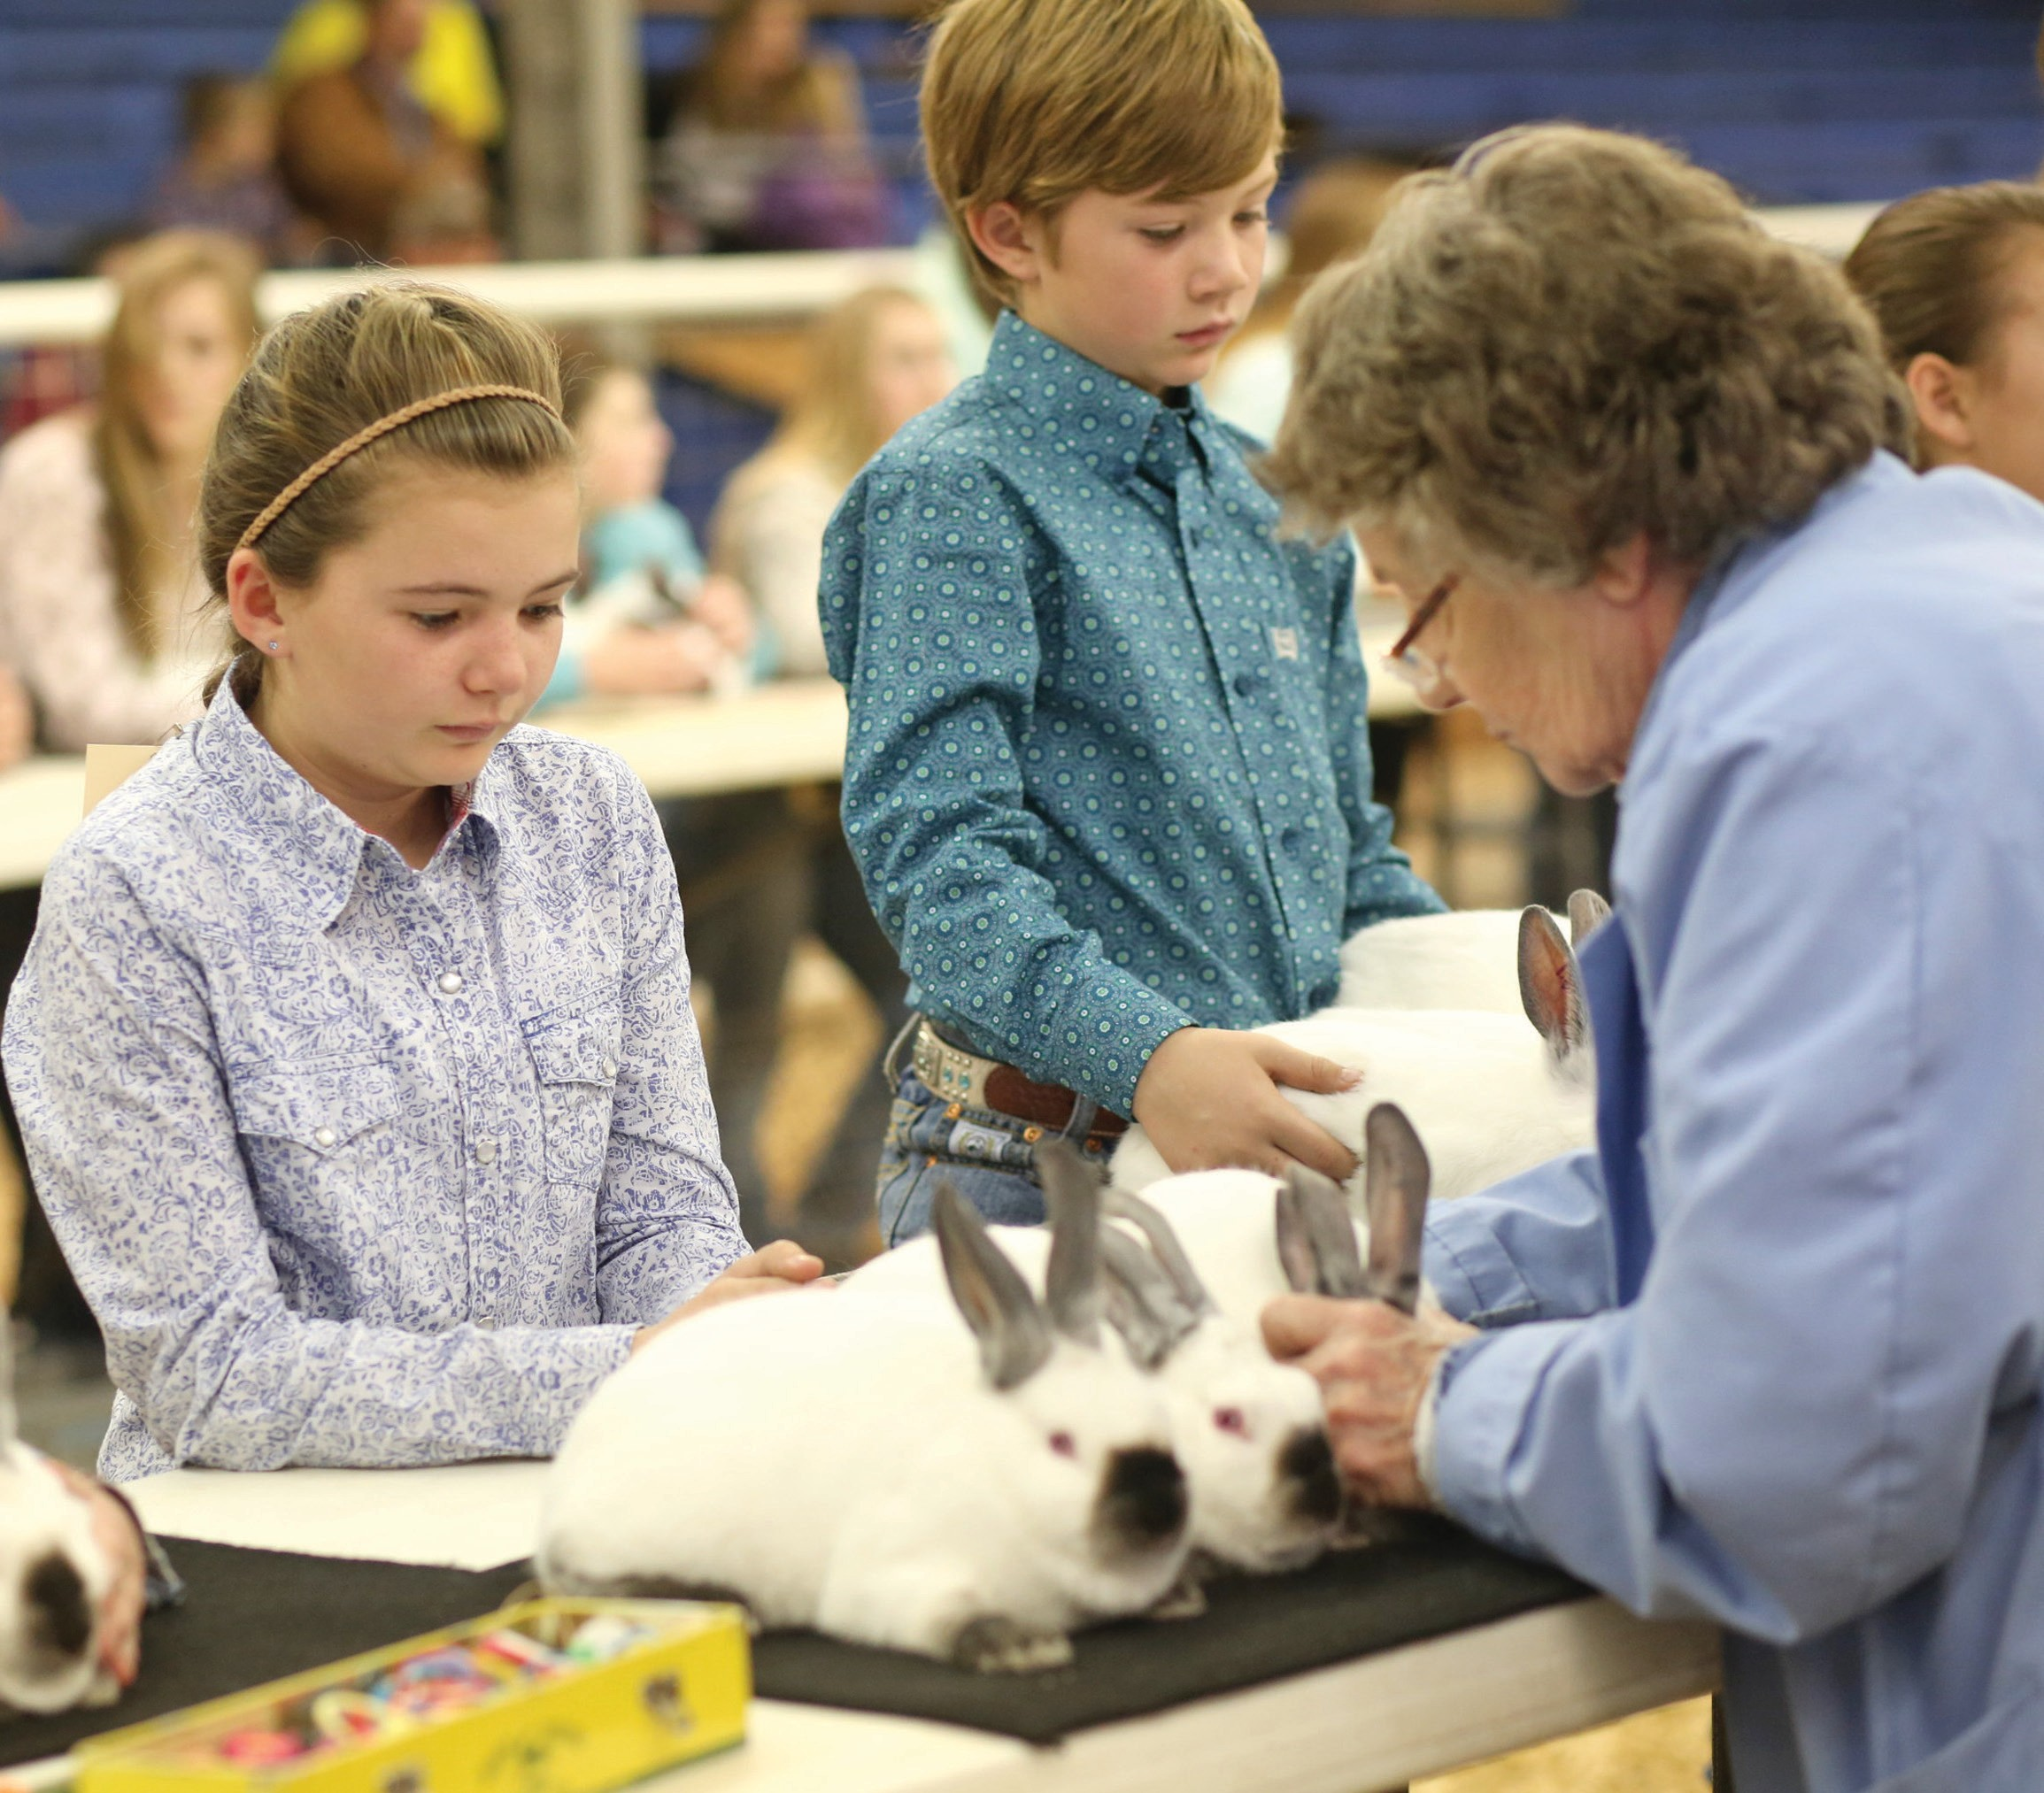 Emma and Aydan Smith both members of the Mesquite 4-H prepare for rabbit judge Dr. Amy Balzan DVM to inspect their rabbits Tuesday, Jan. 14 at the 60th annual Atascosa Live Stock Show. Emma Smith 11 years old and Aydan Smith 8 years old both attend Pleasanton ISD. Their parents are Marie and Brandon Smith of Pleasanton.